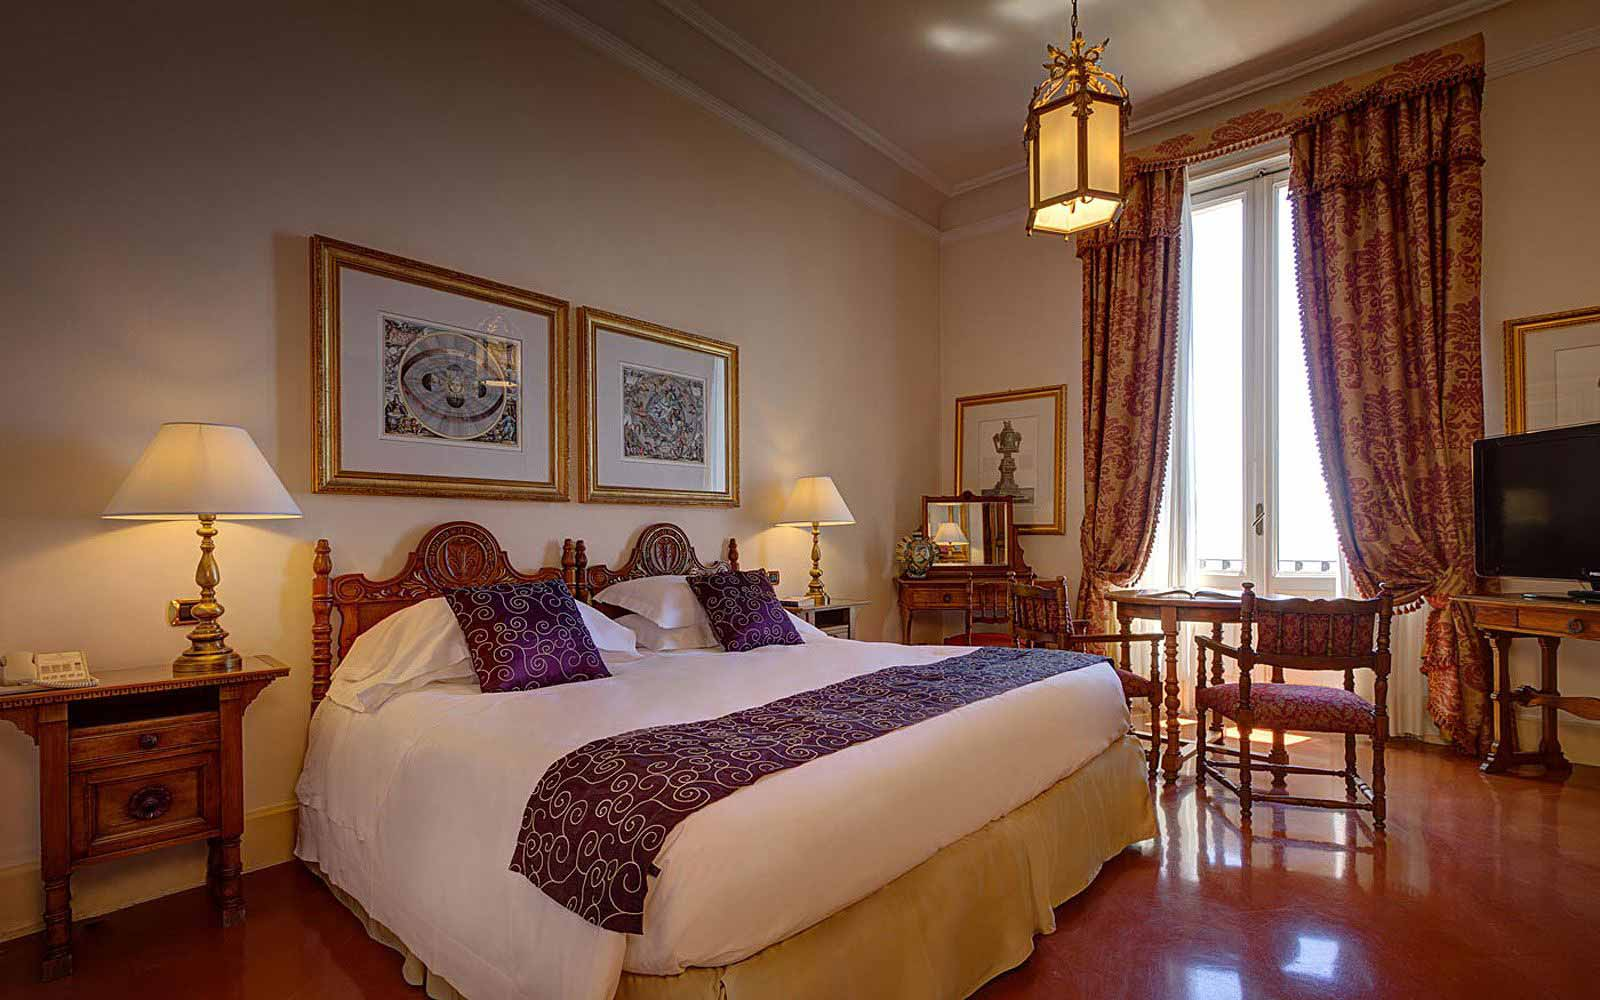 Deluxe room at San Domenico Palace Hotel